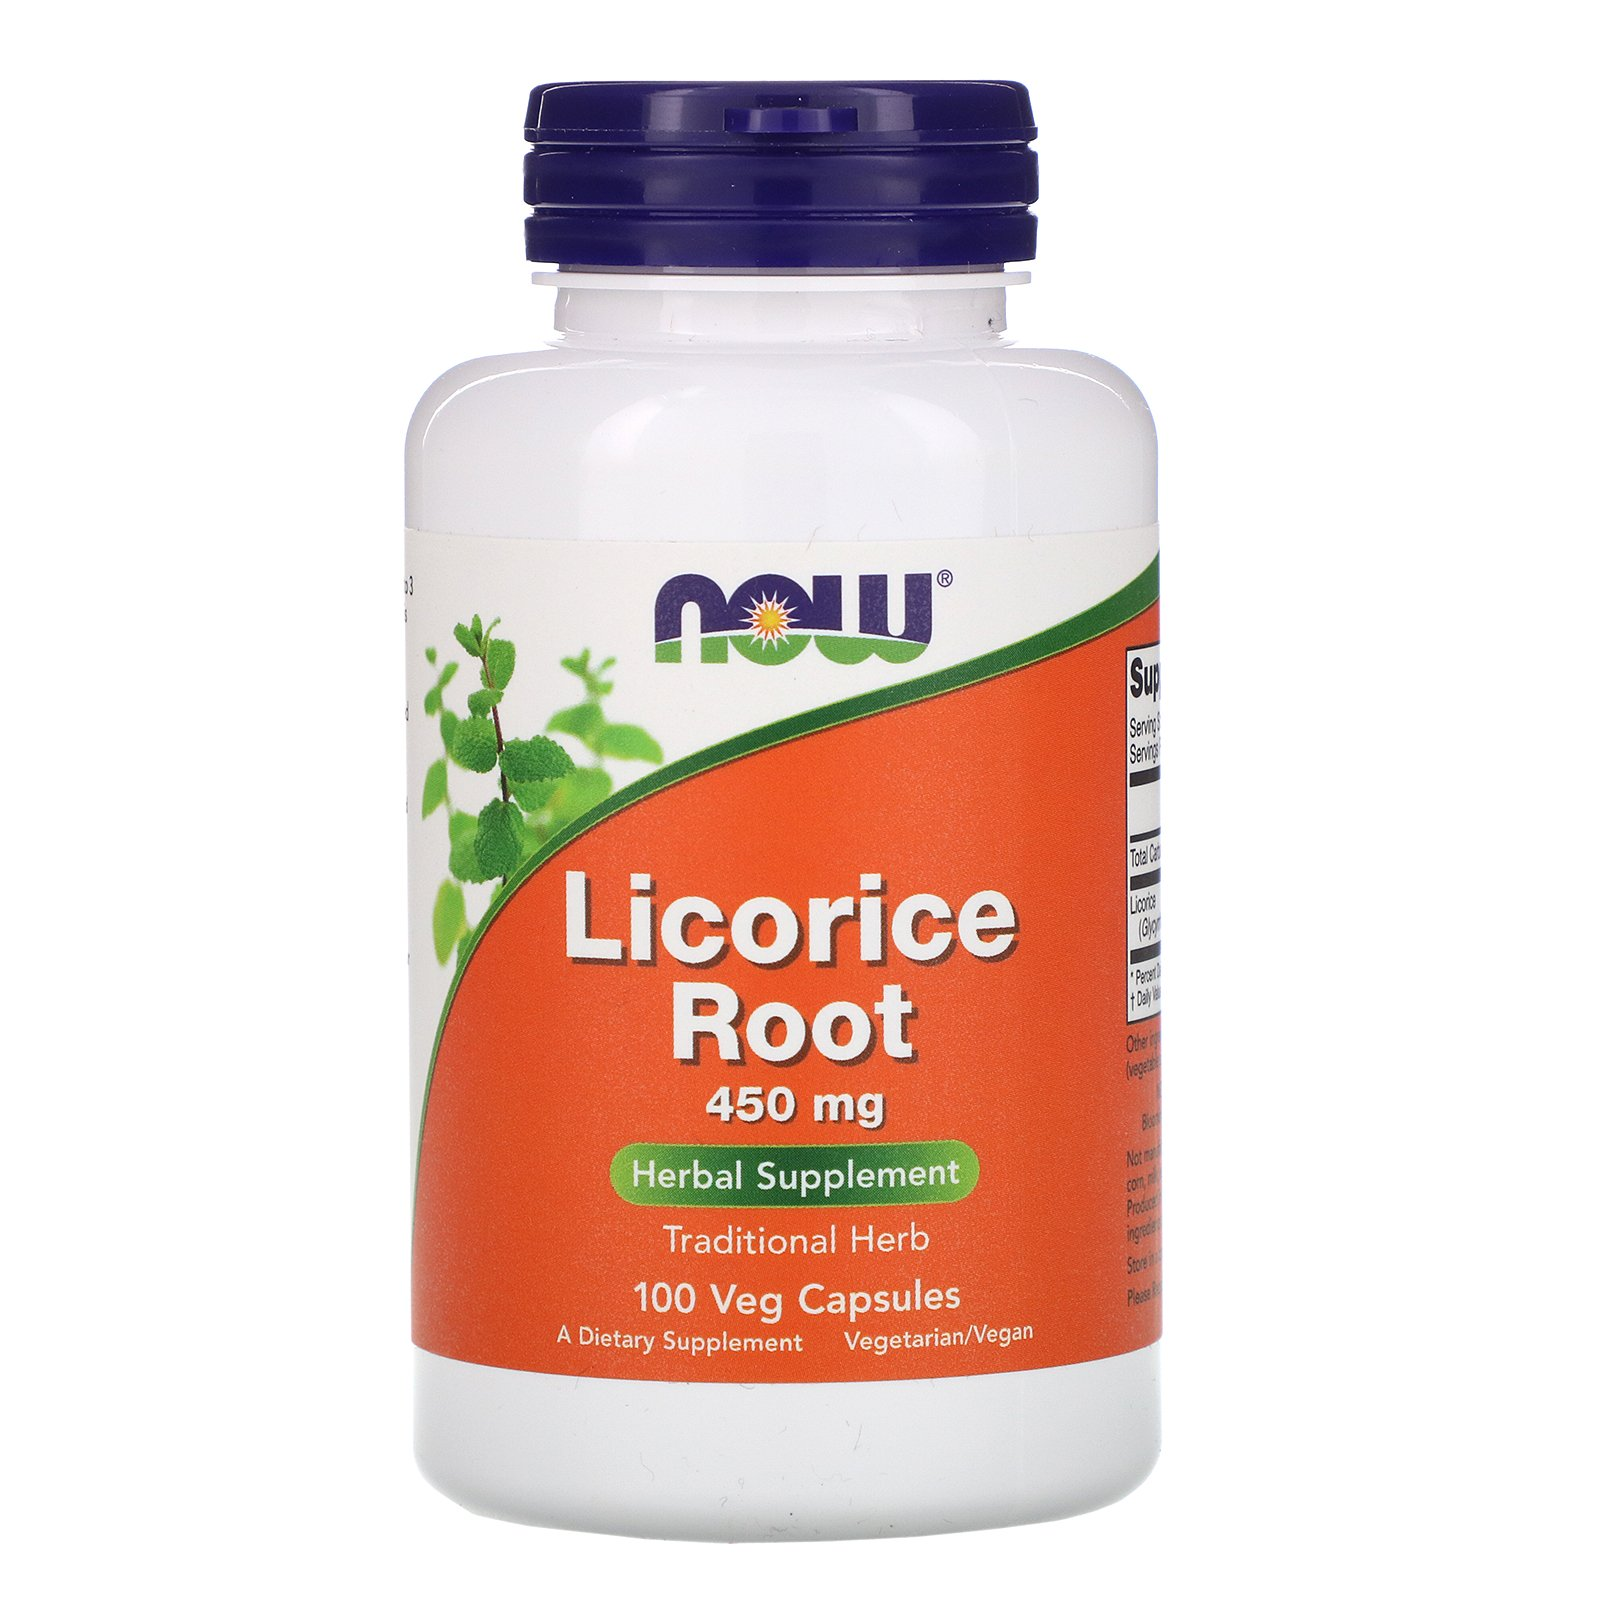 Licorice Root, Корень Солодки 450 мг - 100 капсул